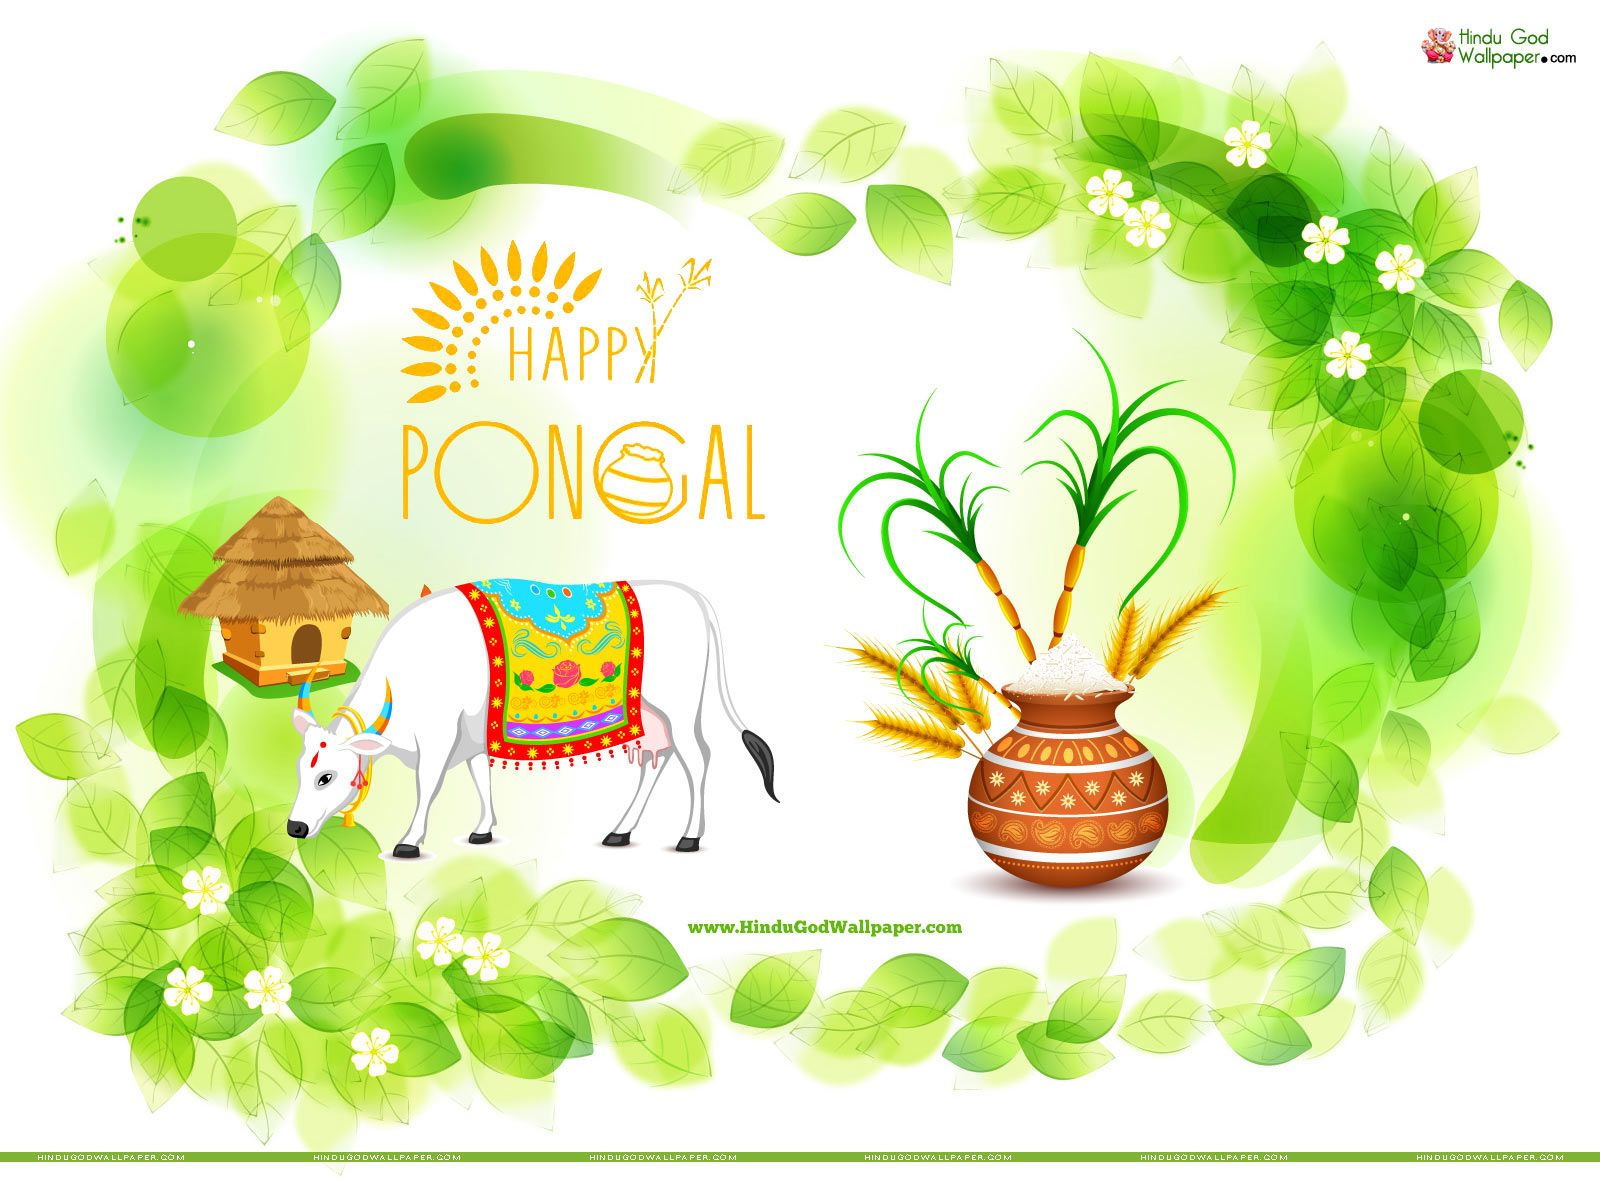 Pongal greetings wallpapers with wishes free download my board pongal greetings wallpapers with wishes free download my board pinterest wallpaper happy pongal and wallpaper pictures m4hsunfo